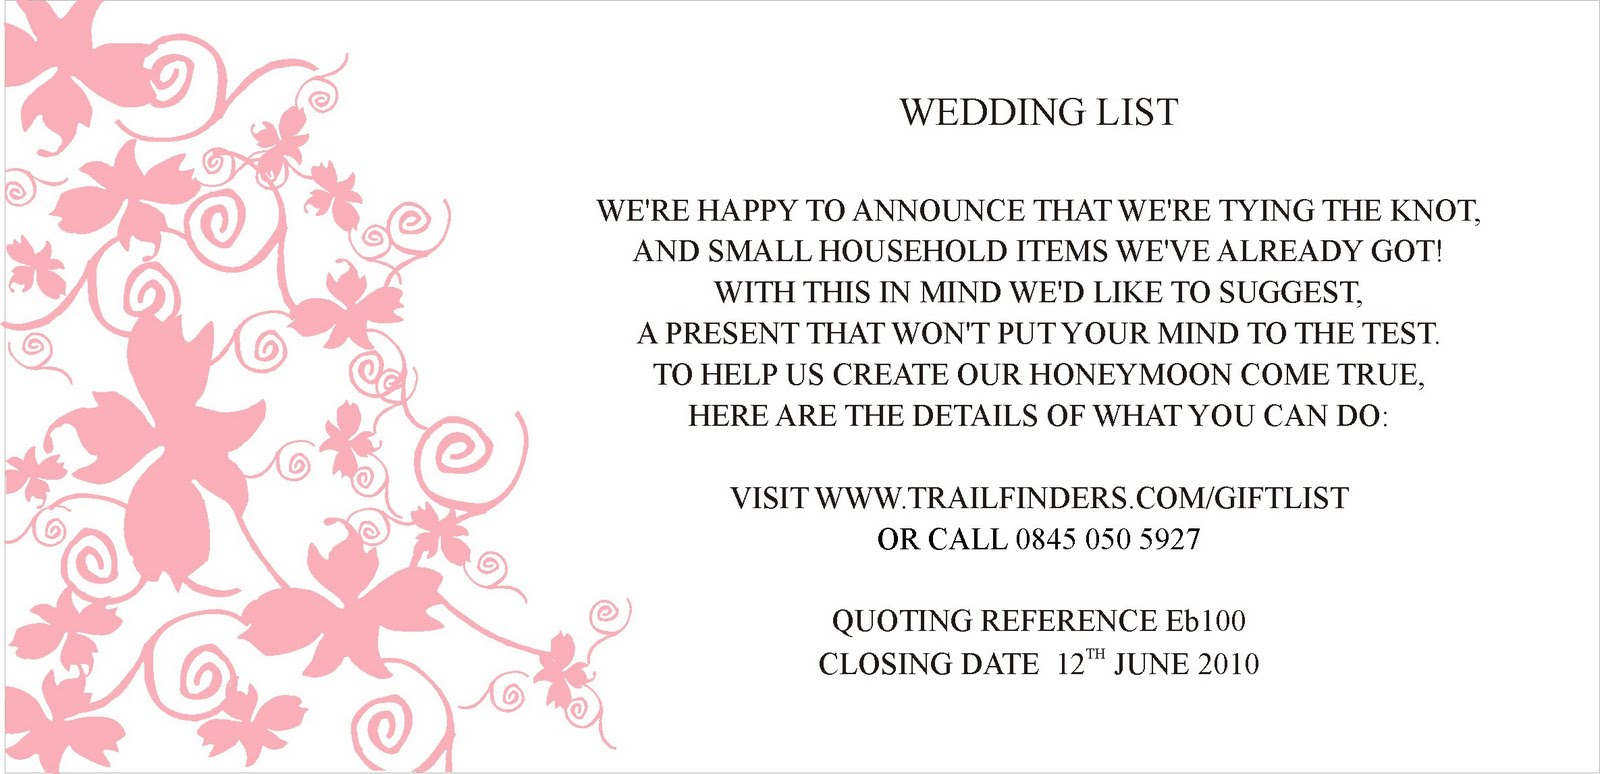 Inspiration for weddings, invitations and stationery: Wedding Gift ...